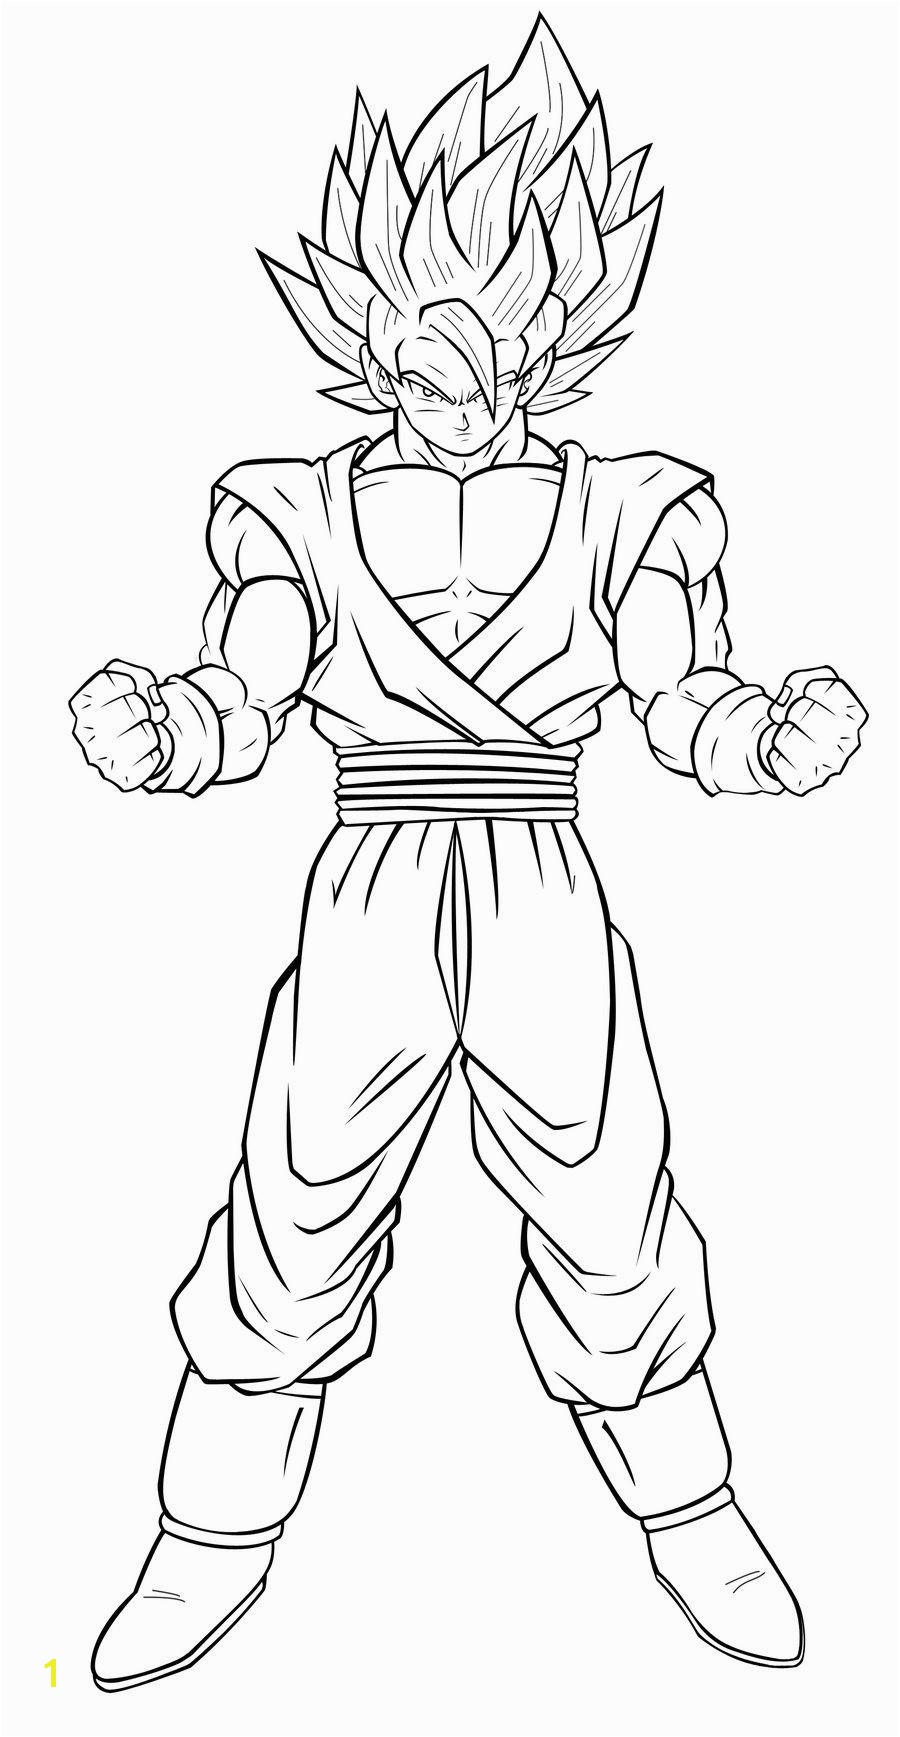 Goku Super Saiyan 4 Coloring Pages images